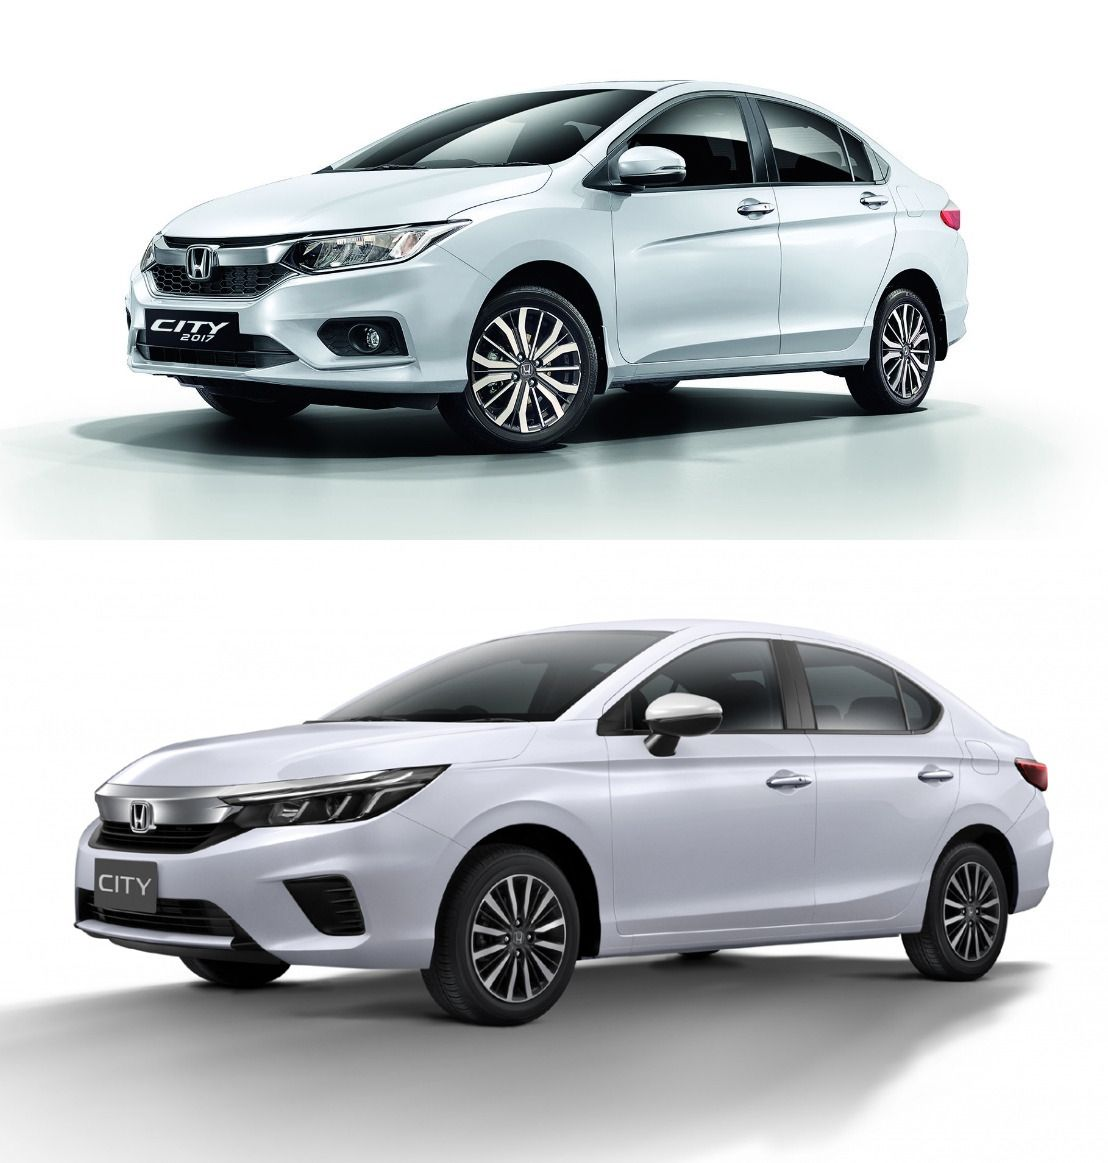 2020 Honda City vs. 2017 Honda City New vs. Old Honda